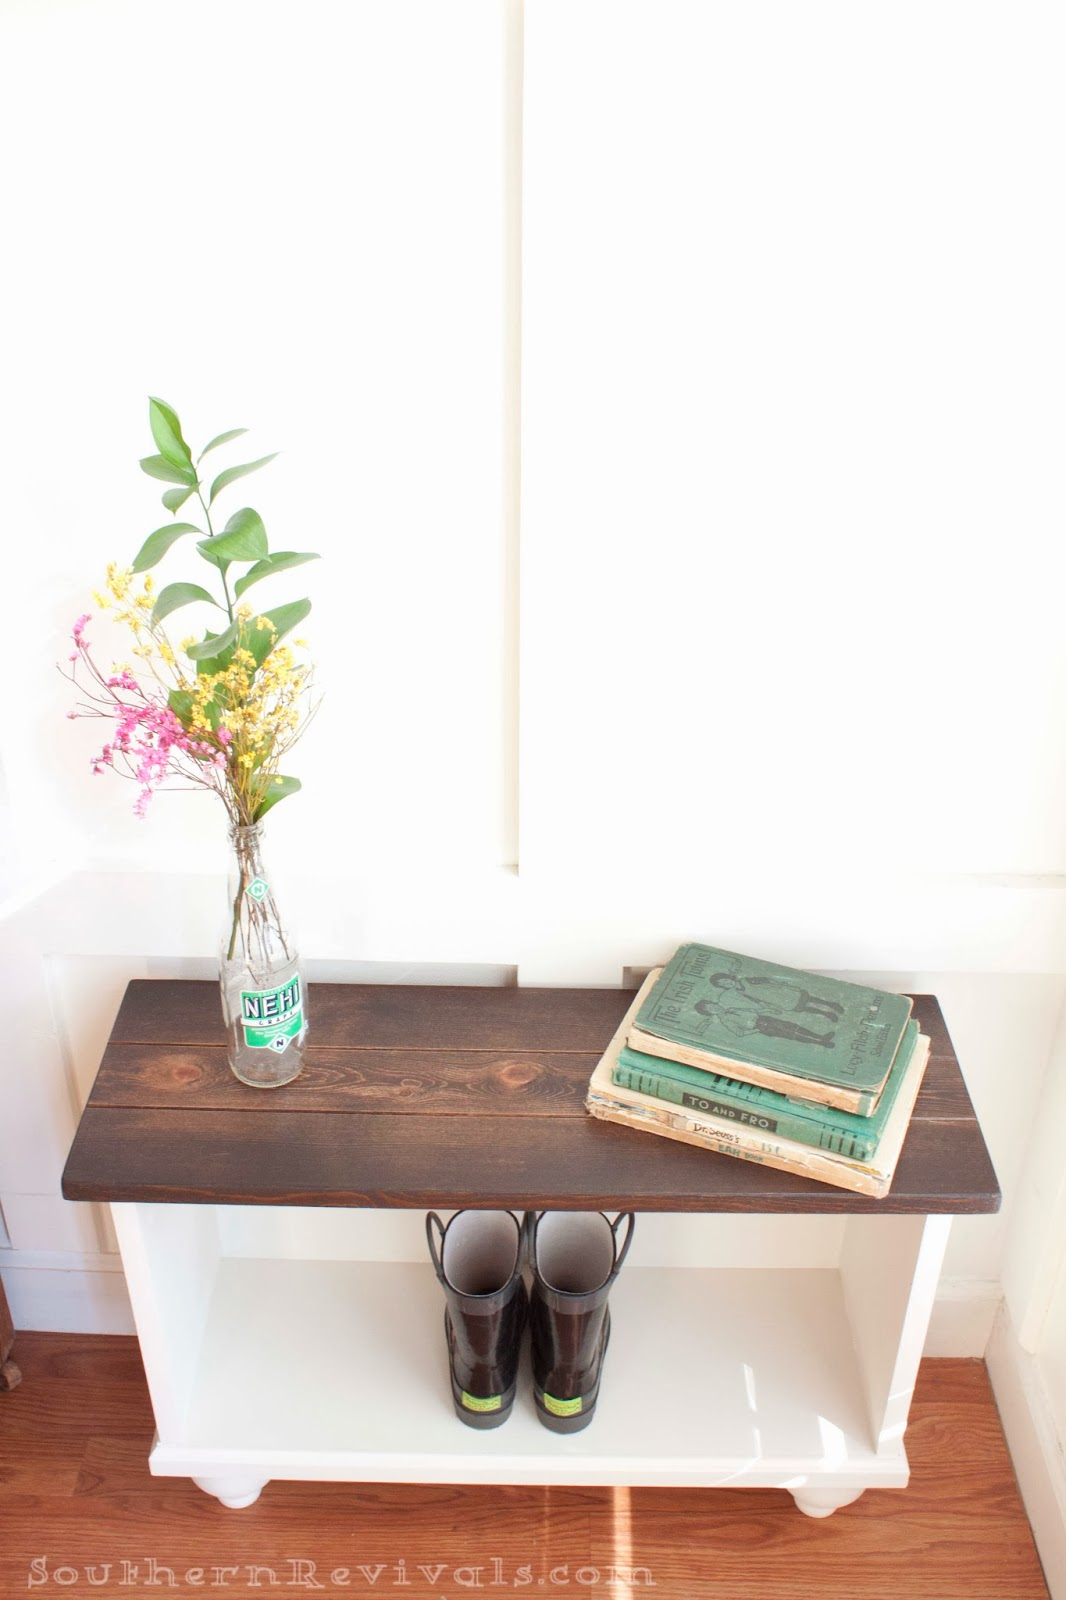 Southern revivals diy entryway bench for small spaces